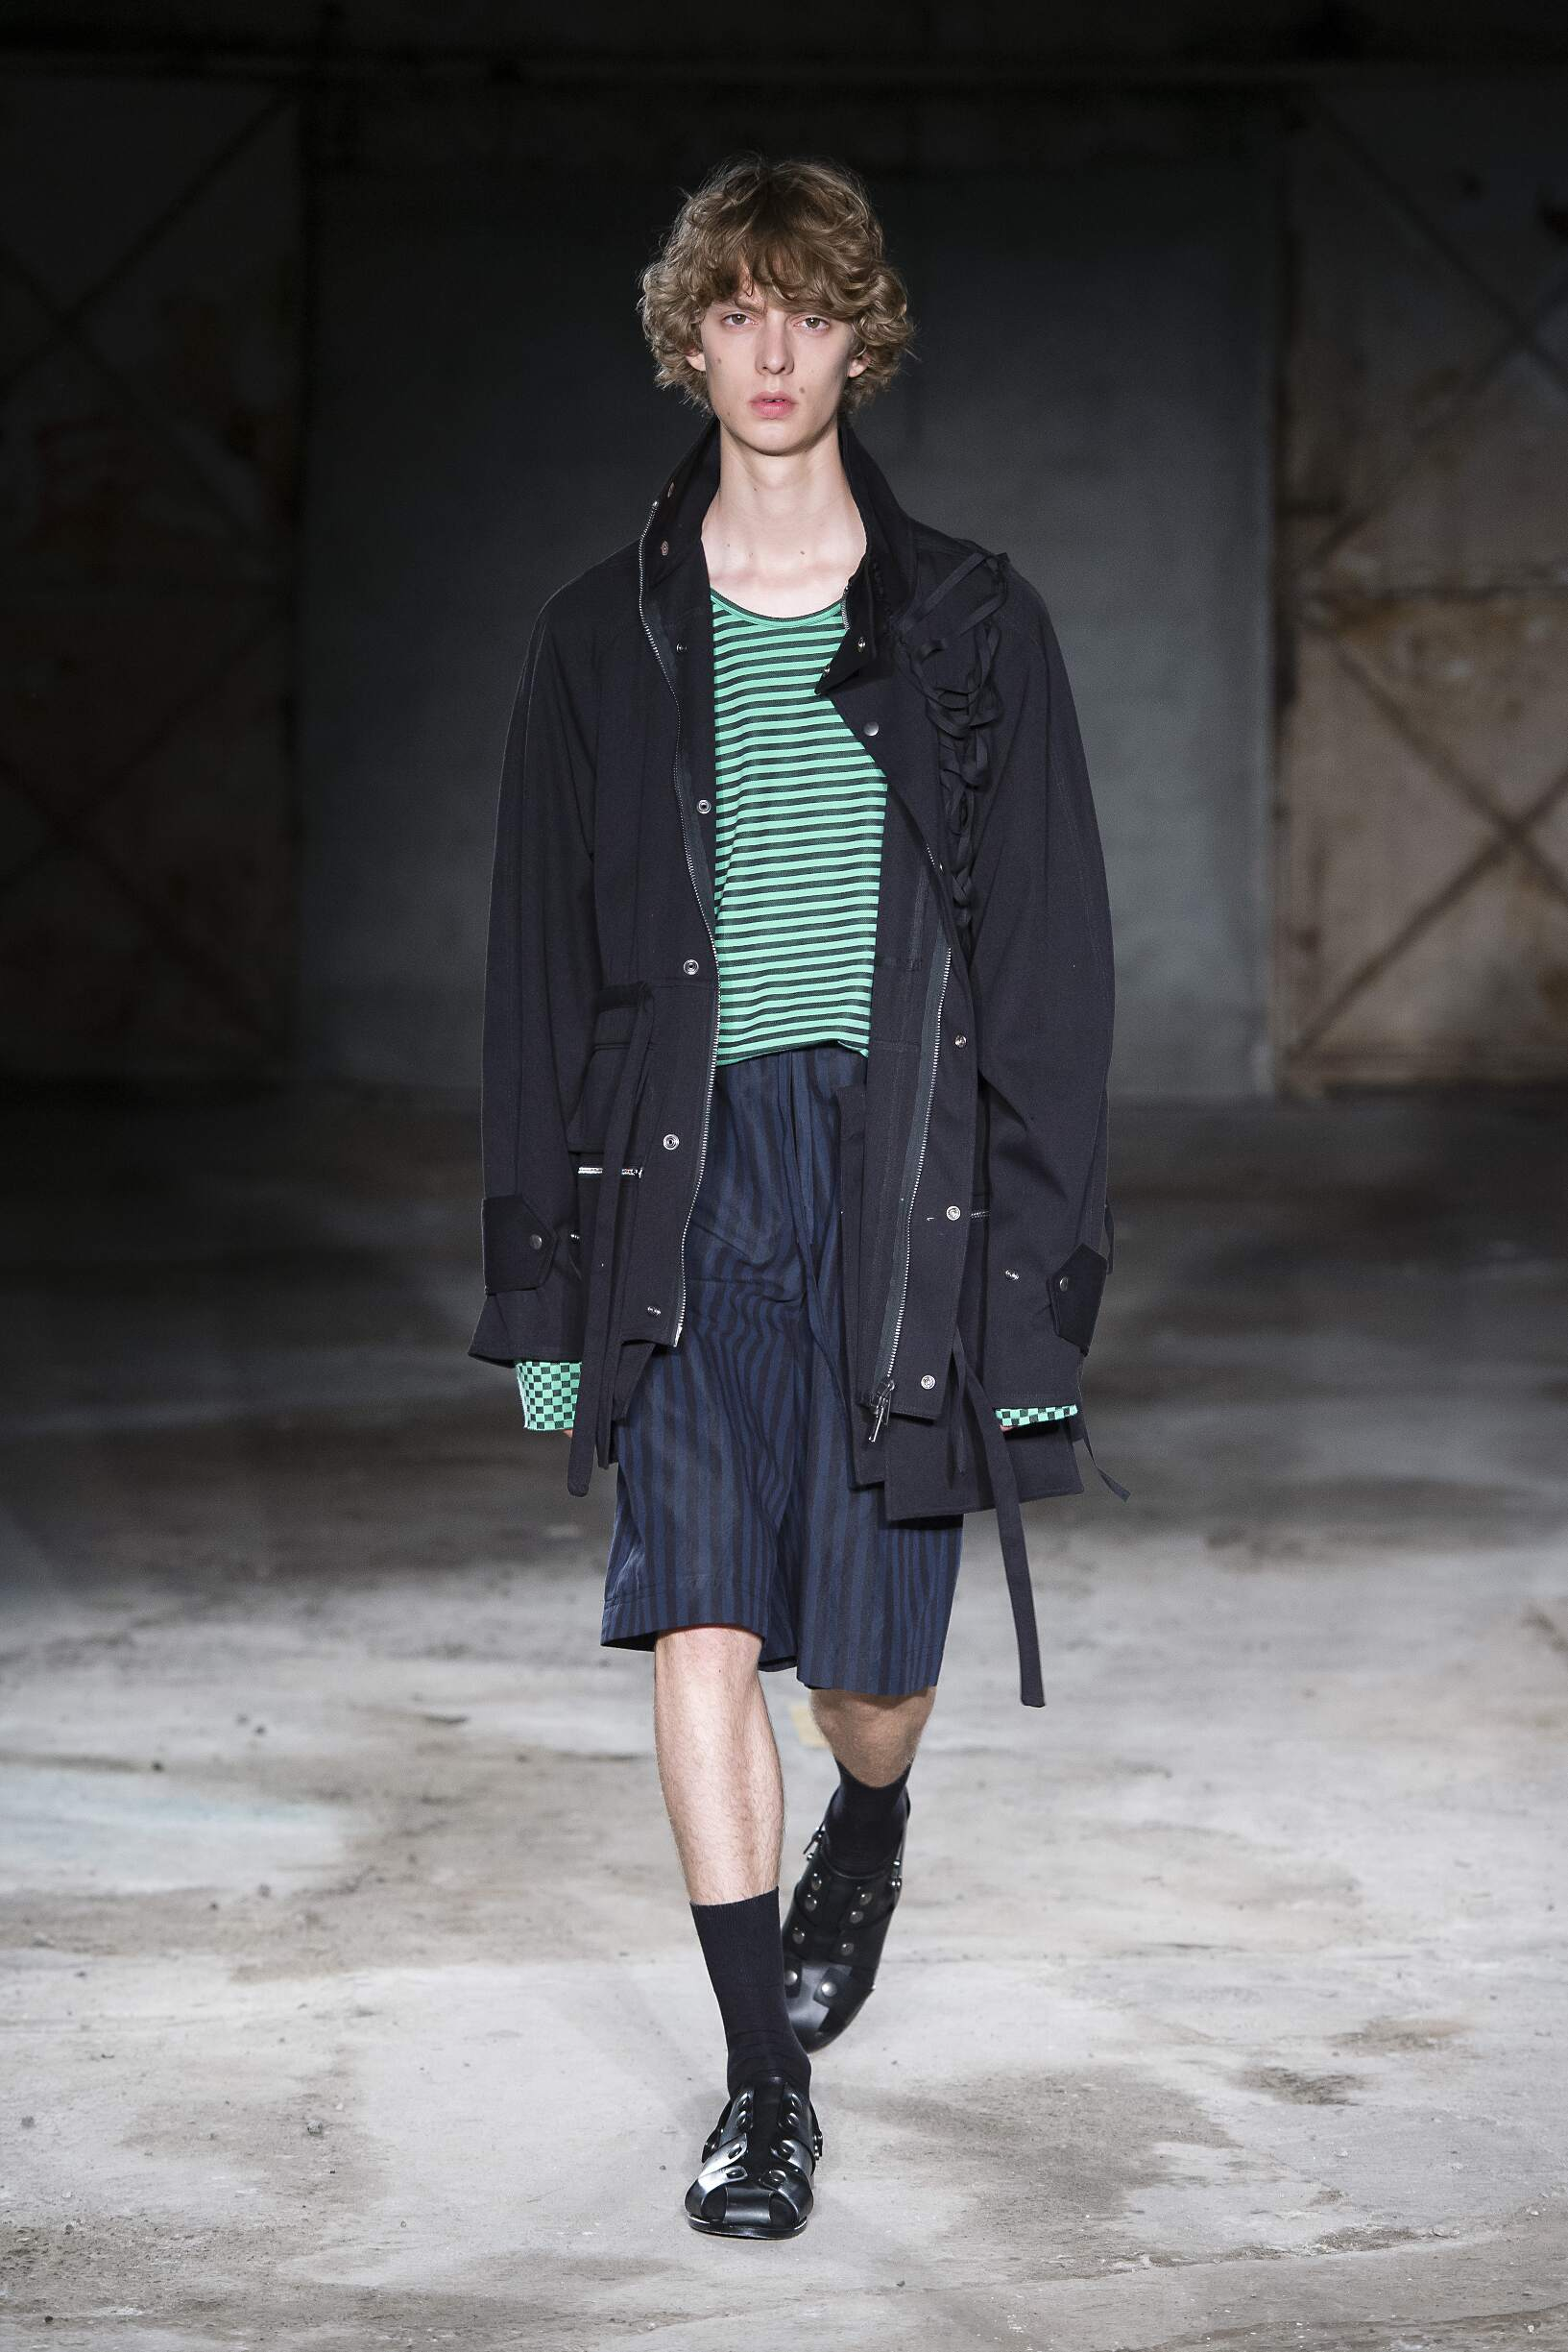 Damir Doma Summer 2018 Catwalk